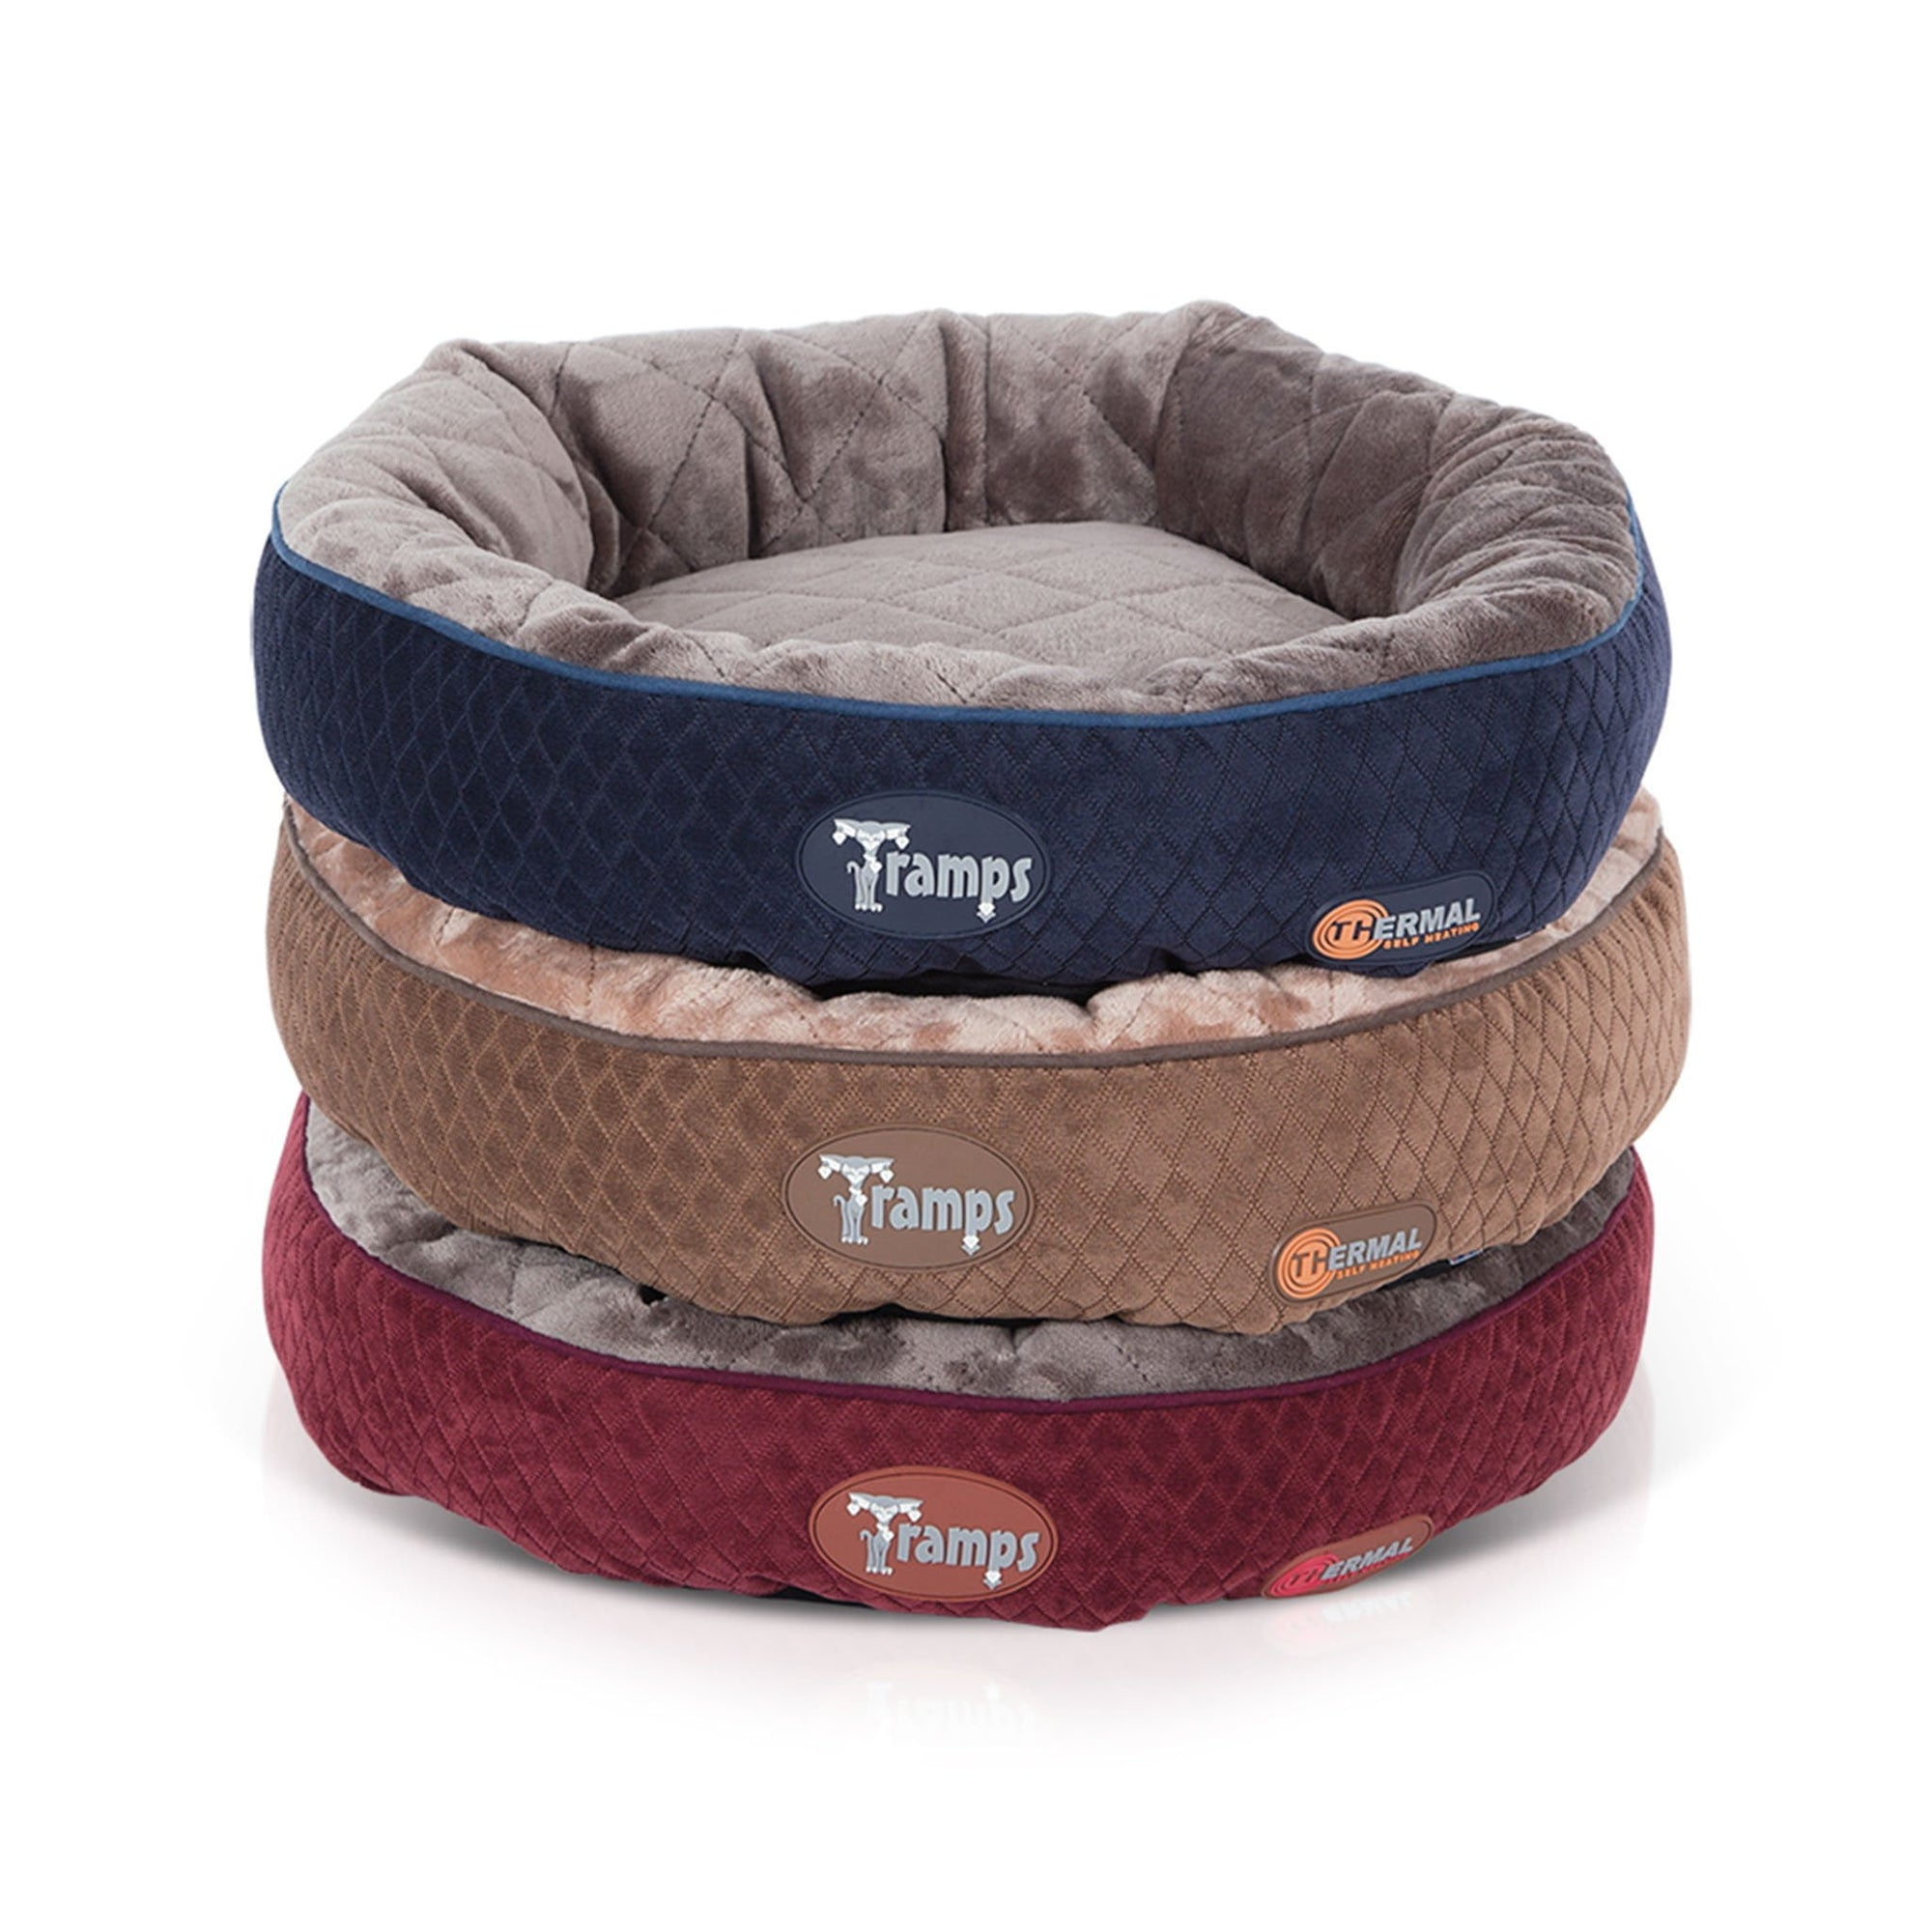 Tramps Thermal Ring Cat Bed - ComfyPet Products